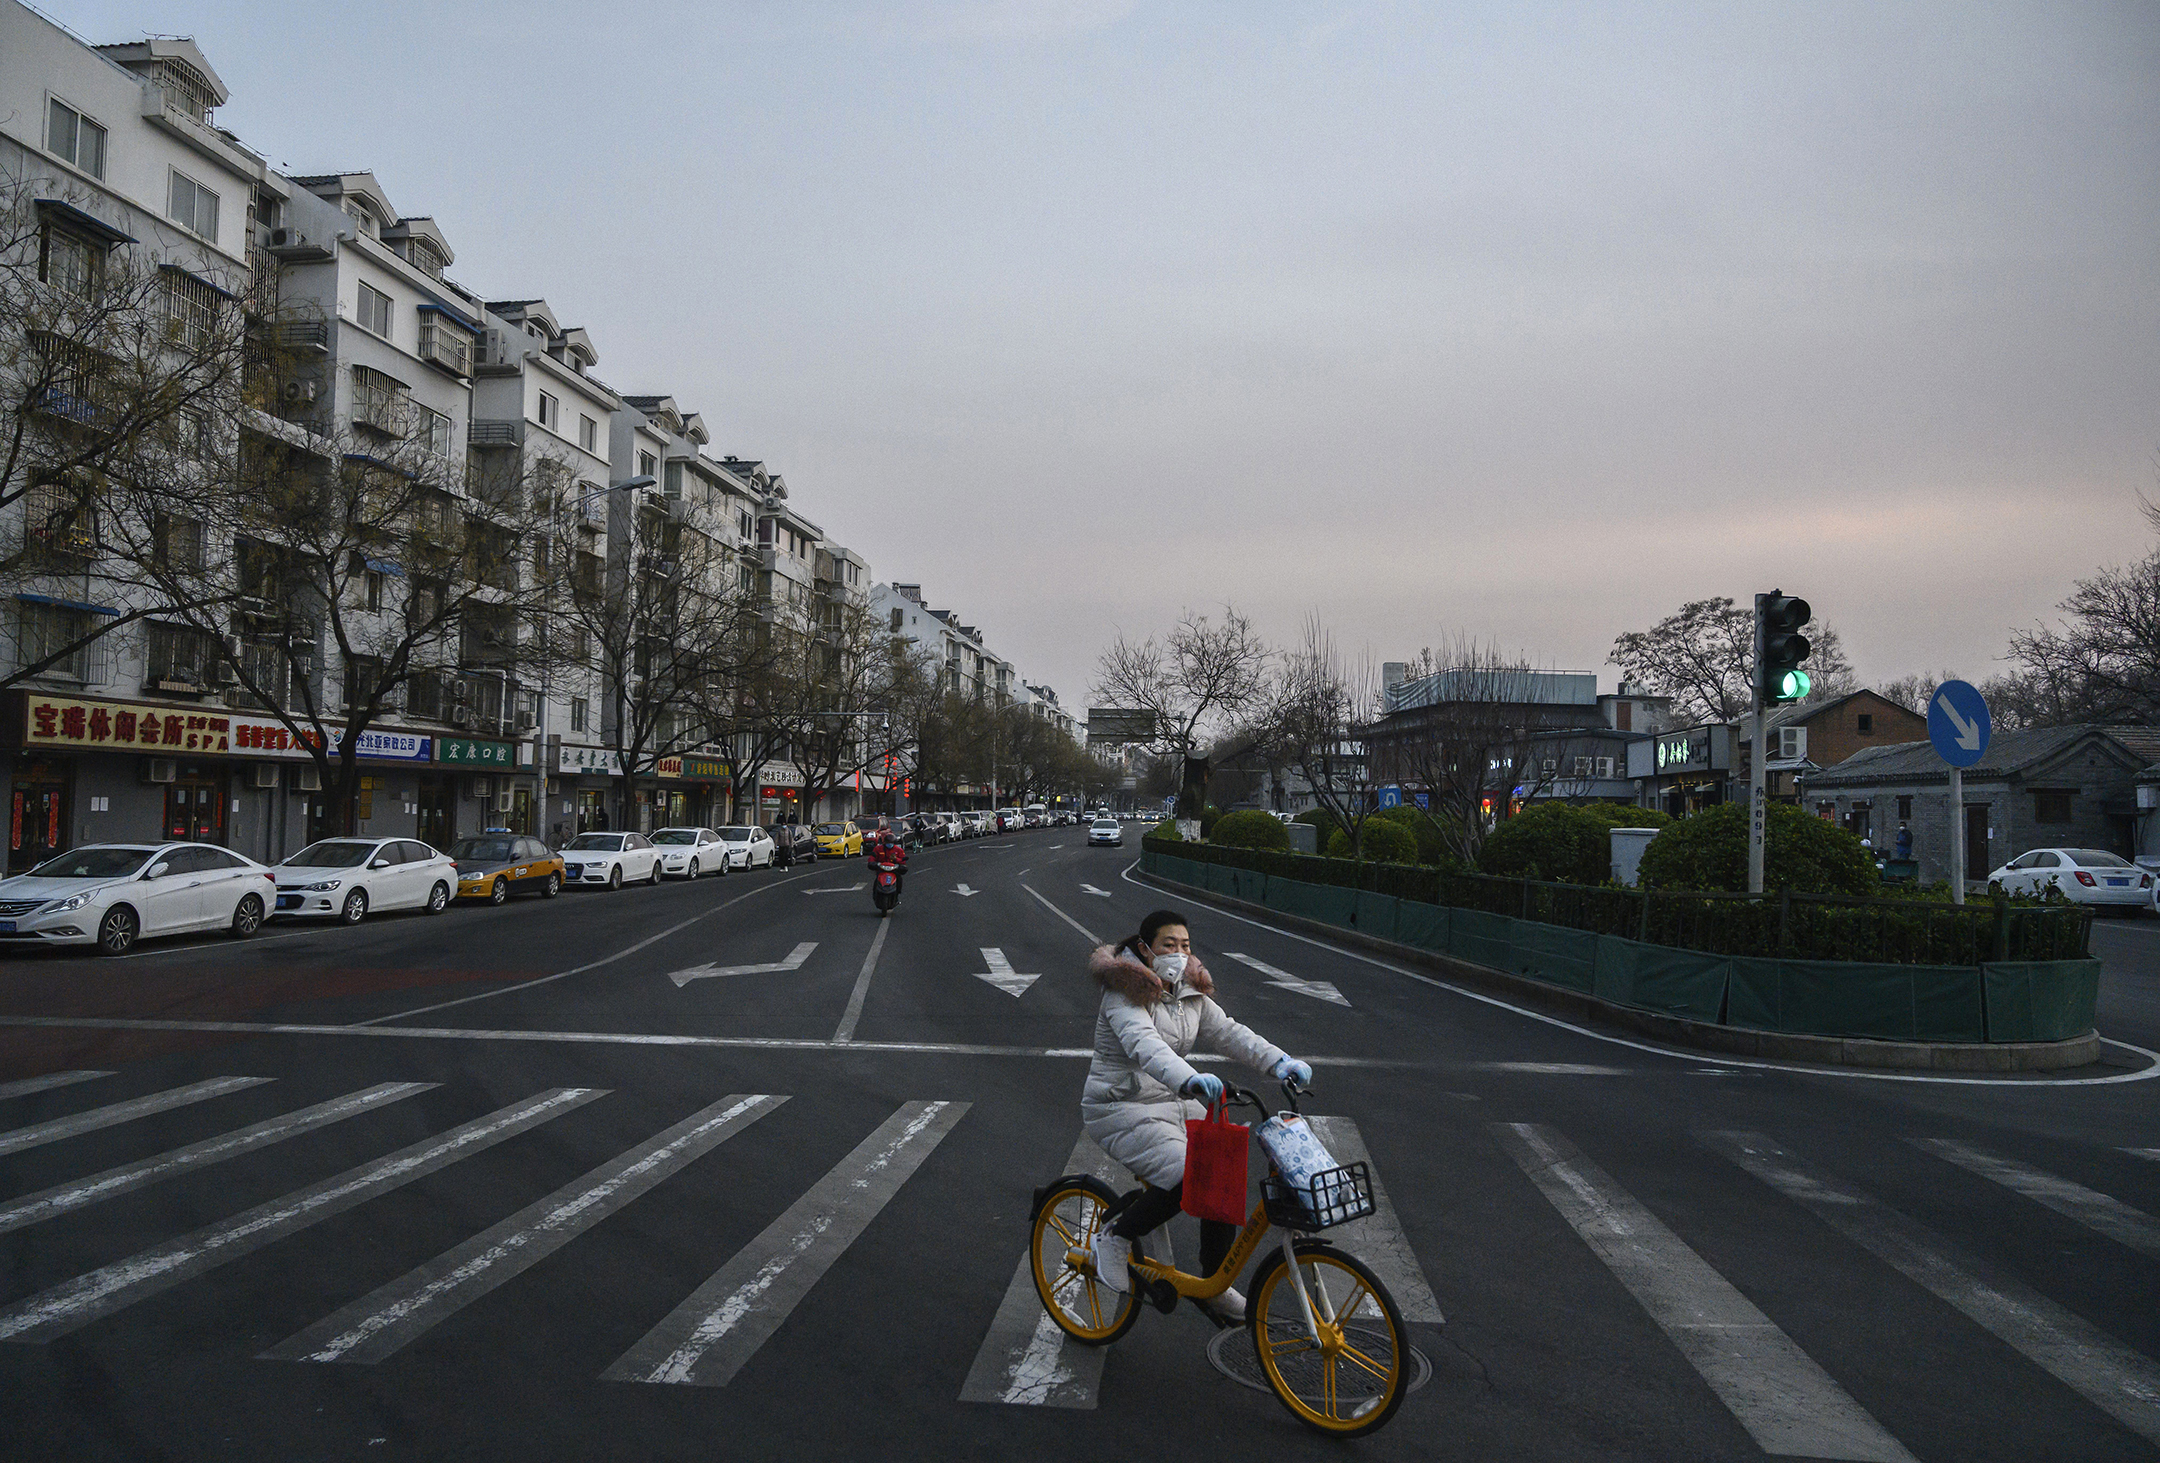 A Chinese woman wears a protective mask as she rides a bike in a nearly empty street in Beijing, China